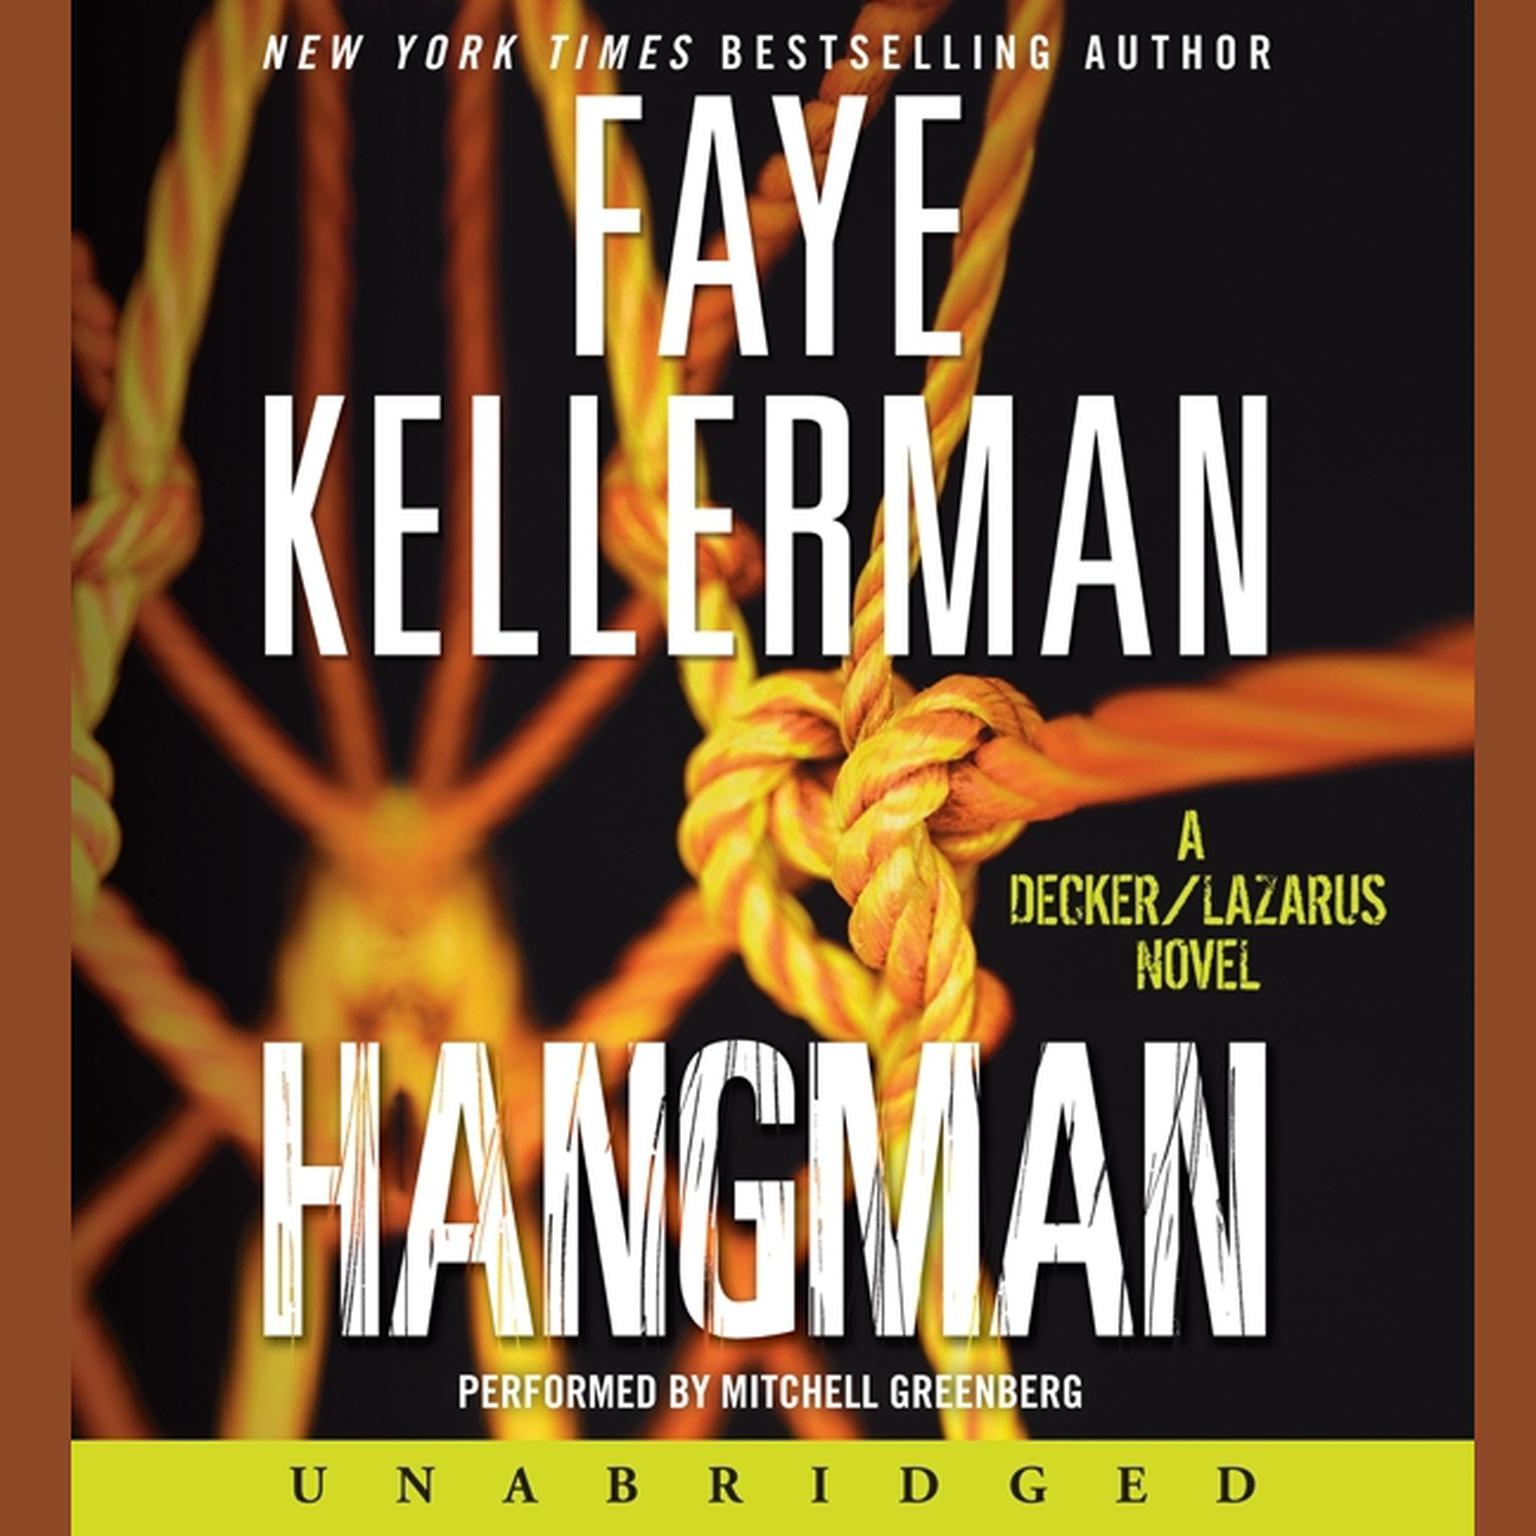 Printable Hangman: A Decker/Lazarus Novel Audiobook Cover Art